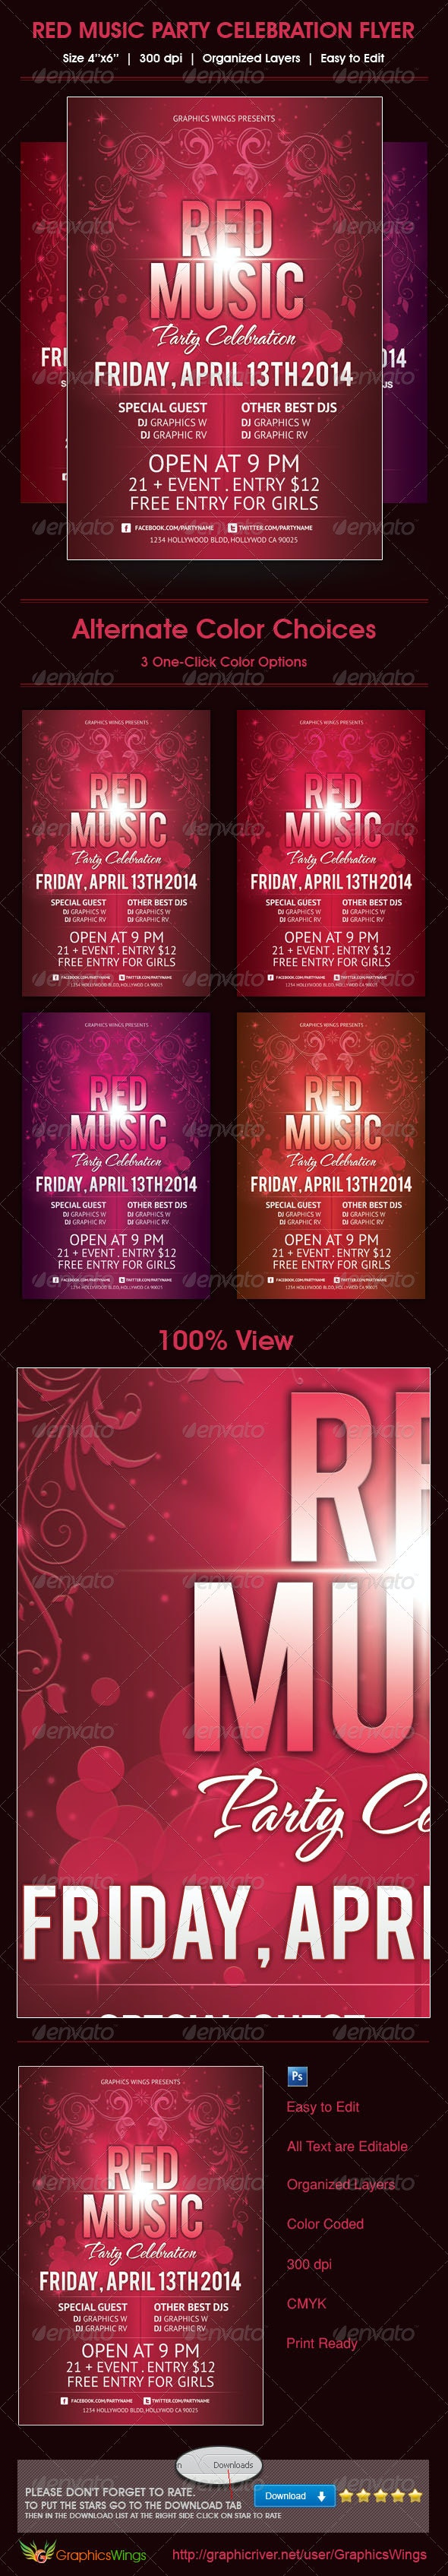 Red Music Party Celebration Flyer Template - Clubs & Parties Events